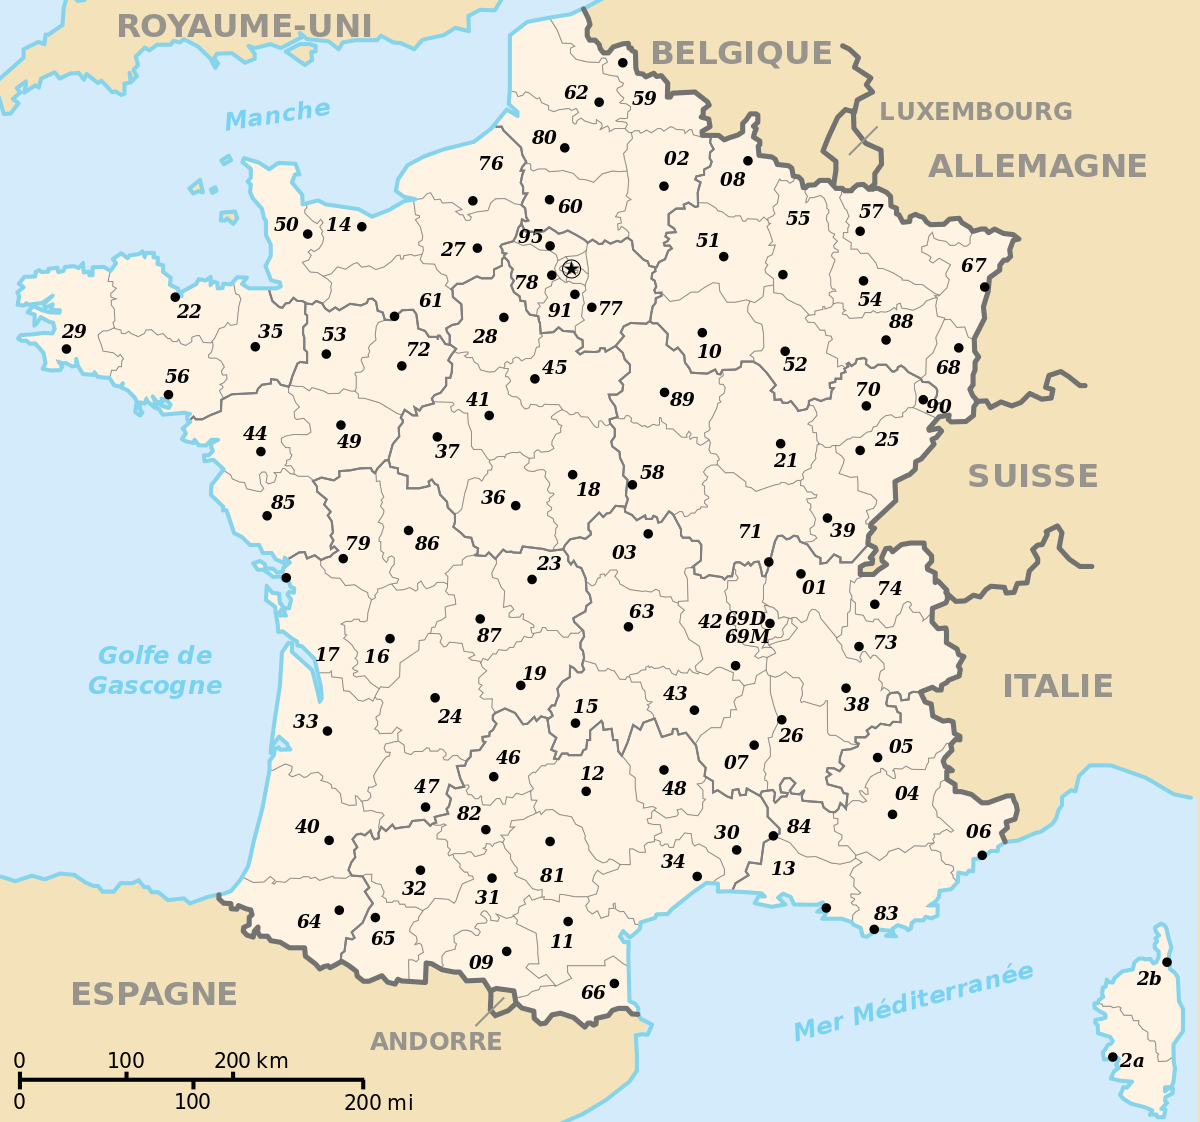 Prefectures In France - Wikipedia concernant Carte Des Préfectures